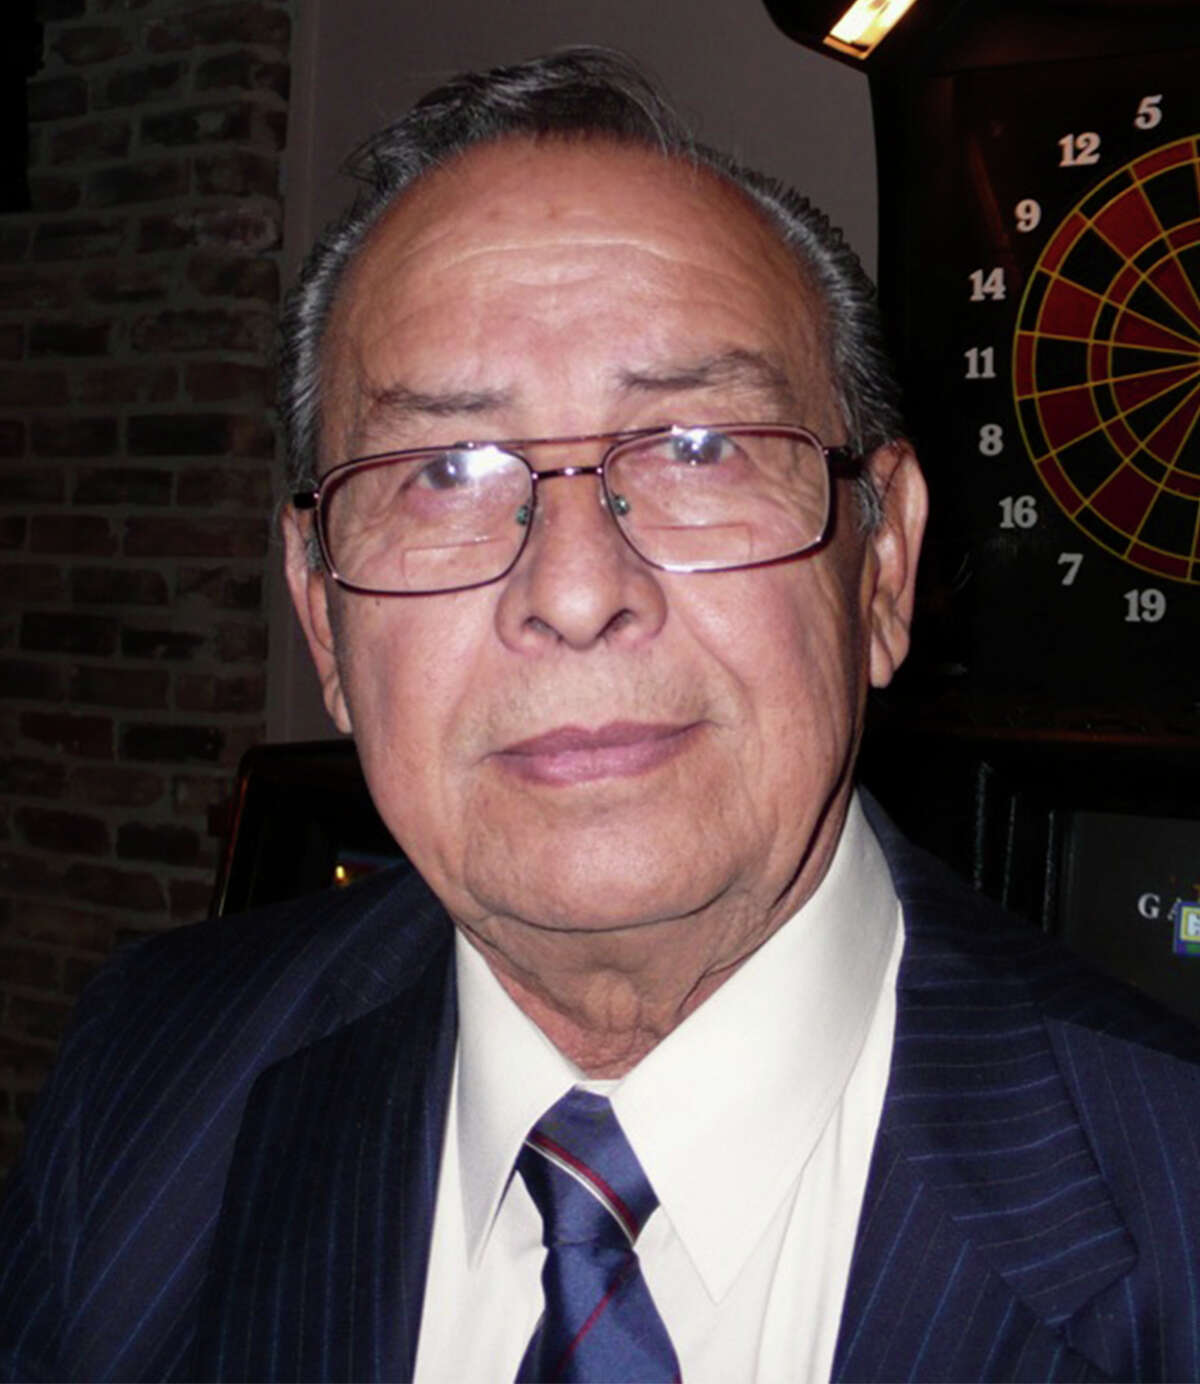 """Ray Madrigal, 71, of Corpus Christi, is a candidate for governor in the March 4 Democratic primary. The part-time municipal court judge in the tiny coastal town of Seadrift is the lone primary opponent to heavily-favored gubernatorial candidate Wendy Davis. Heé¢Ã©""""é´s shown in San Antonio campaigning at a Bexar County Democratic Party event on Dec. 17."""